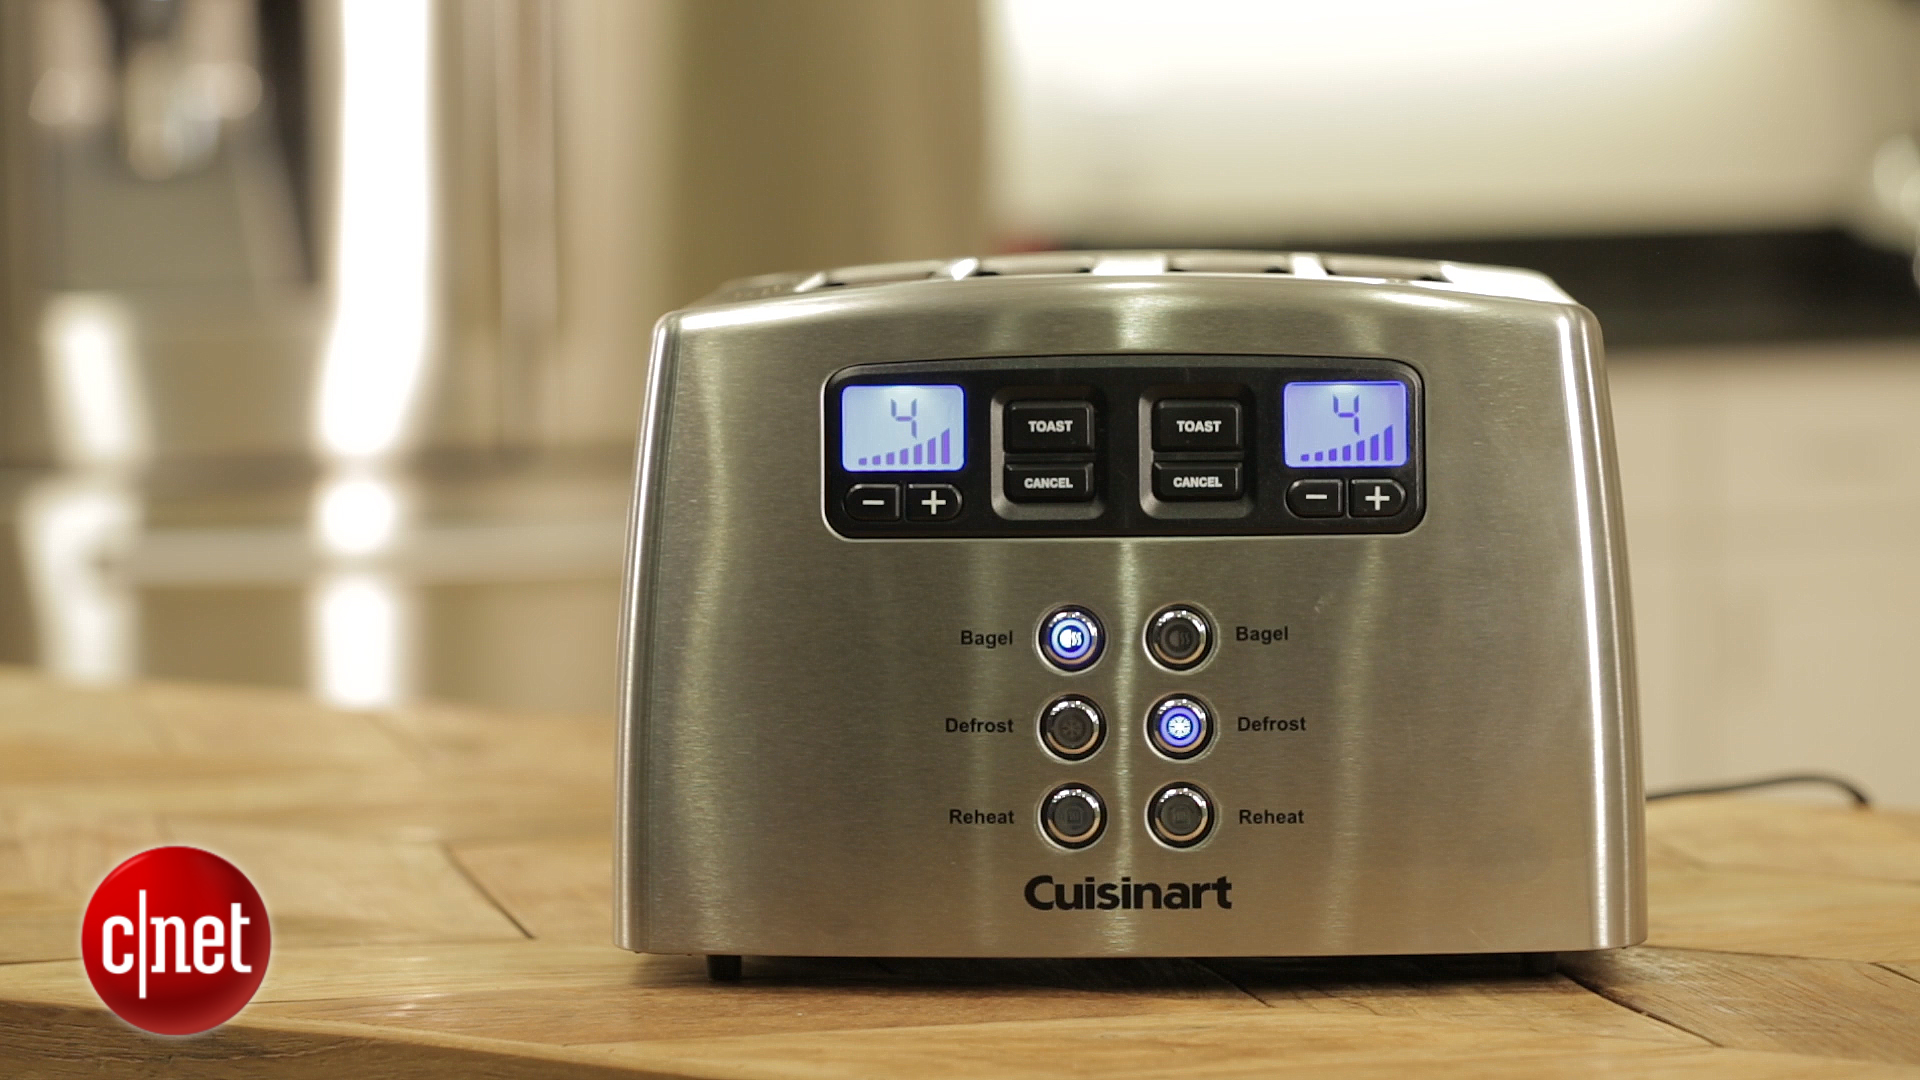 Video: A high-end toaster that might just be worth it